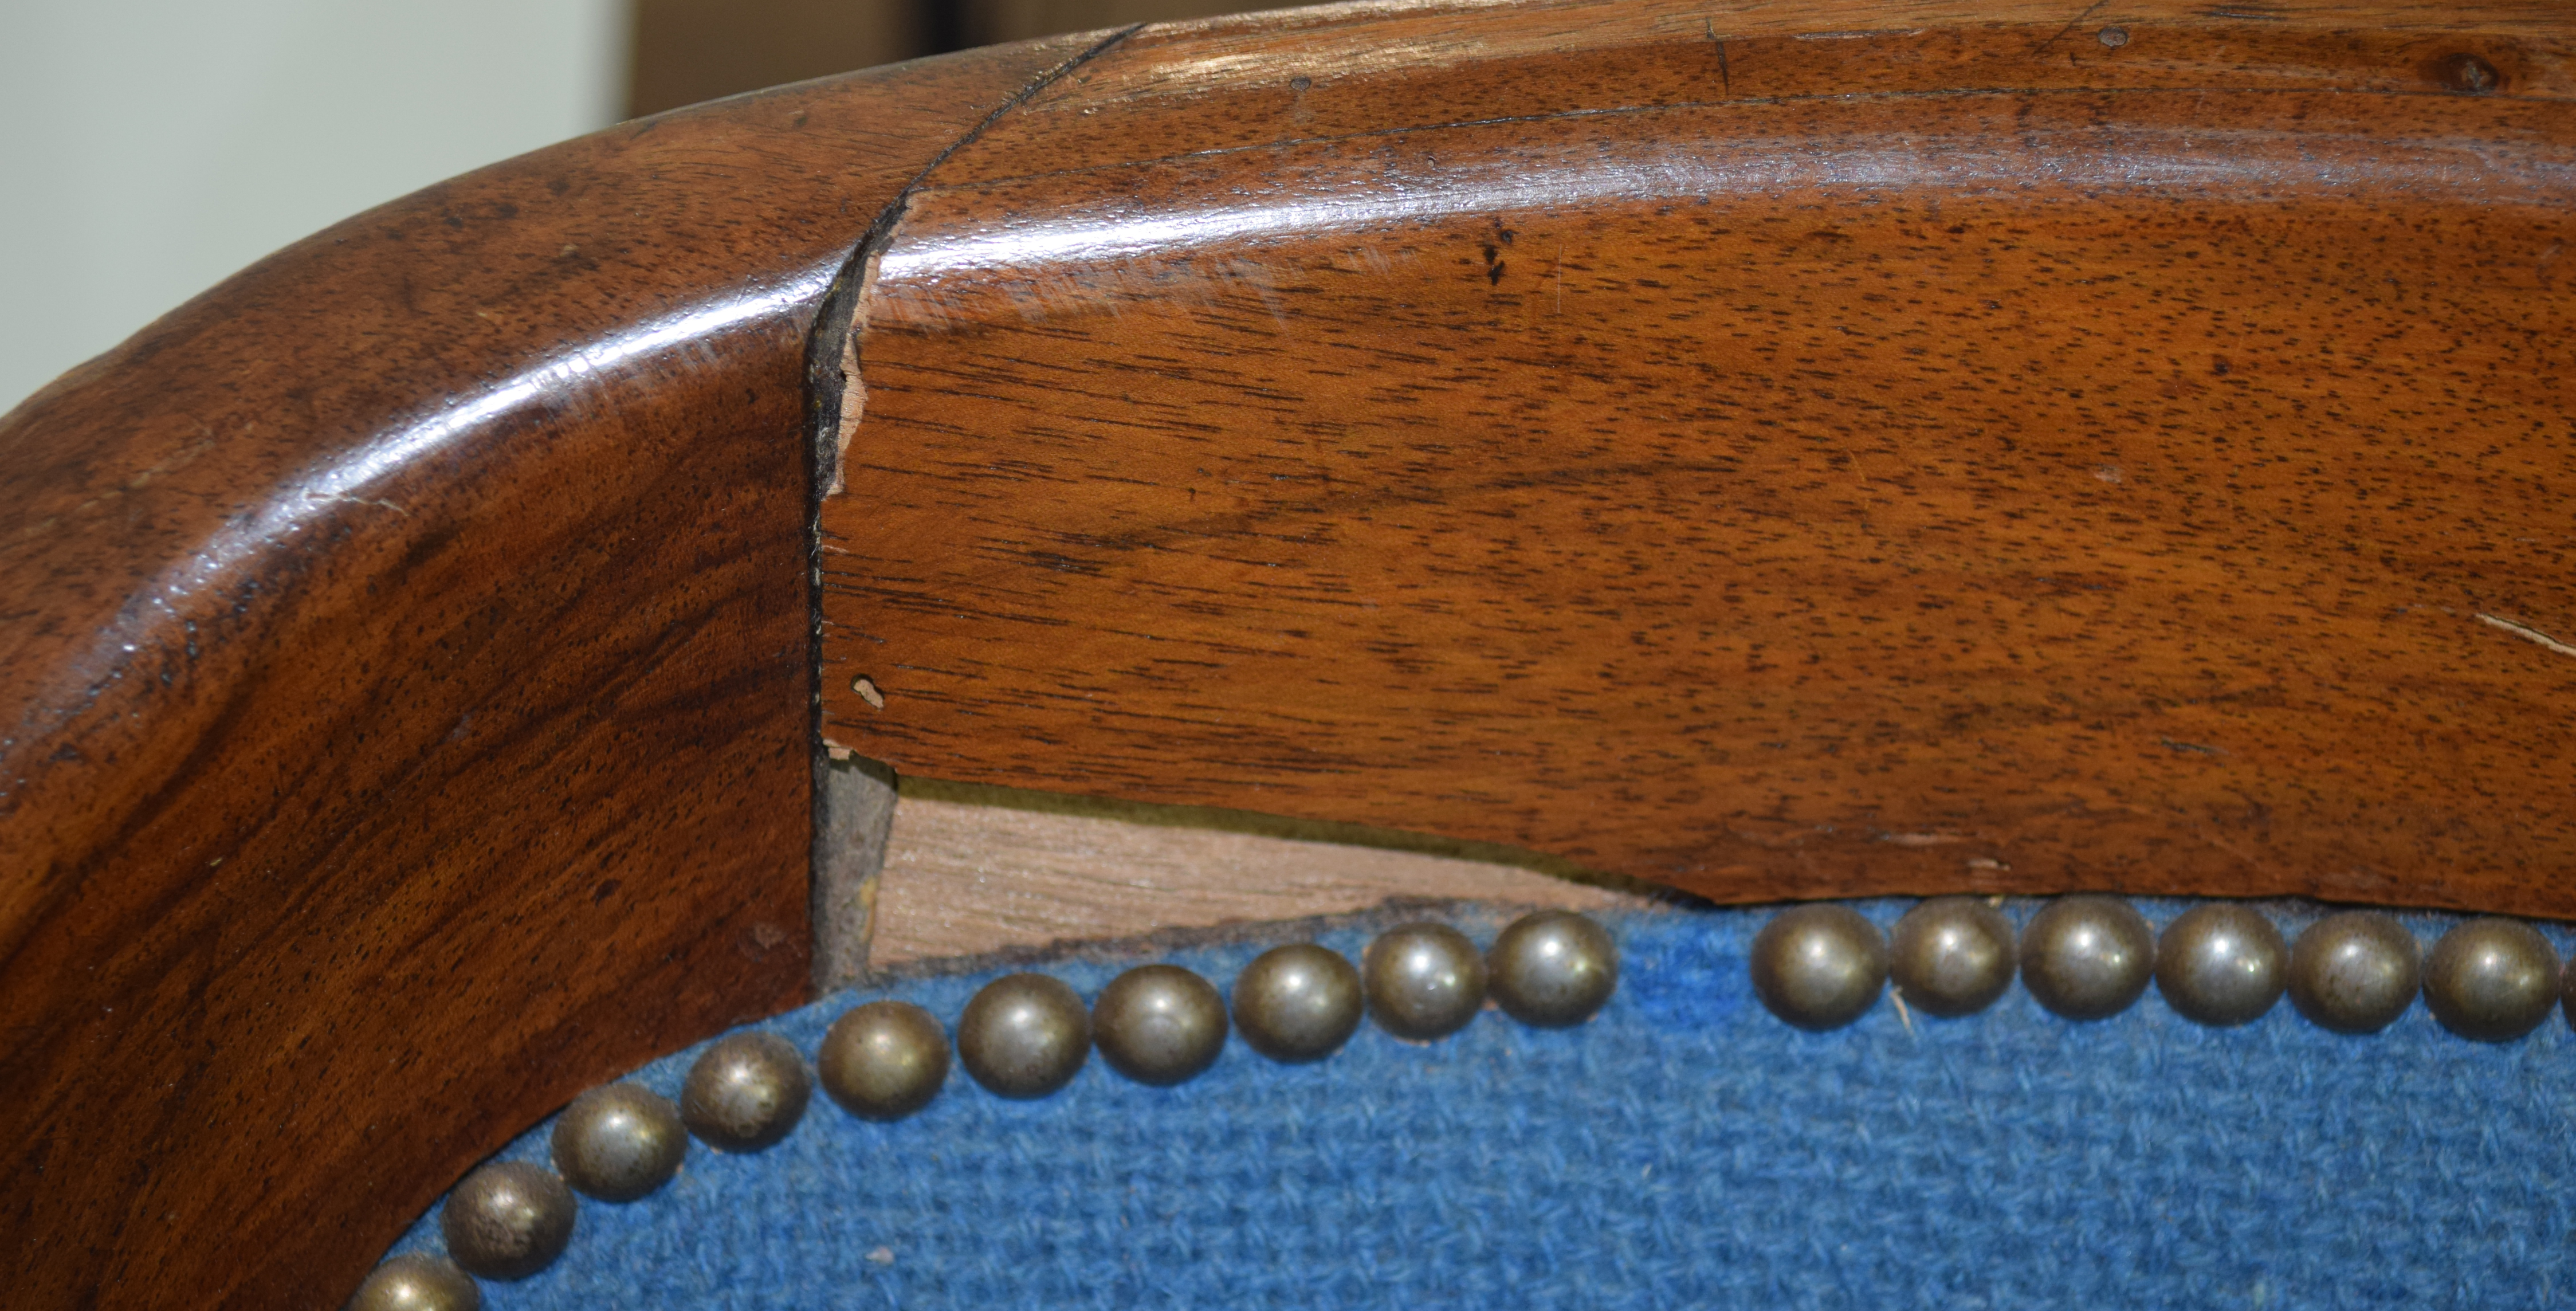 Late 19th/early 20th century mahogany framed tub chair with blue upholstery, 58cm wide Condition: - Image 3 of 5